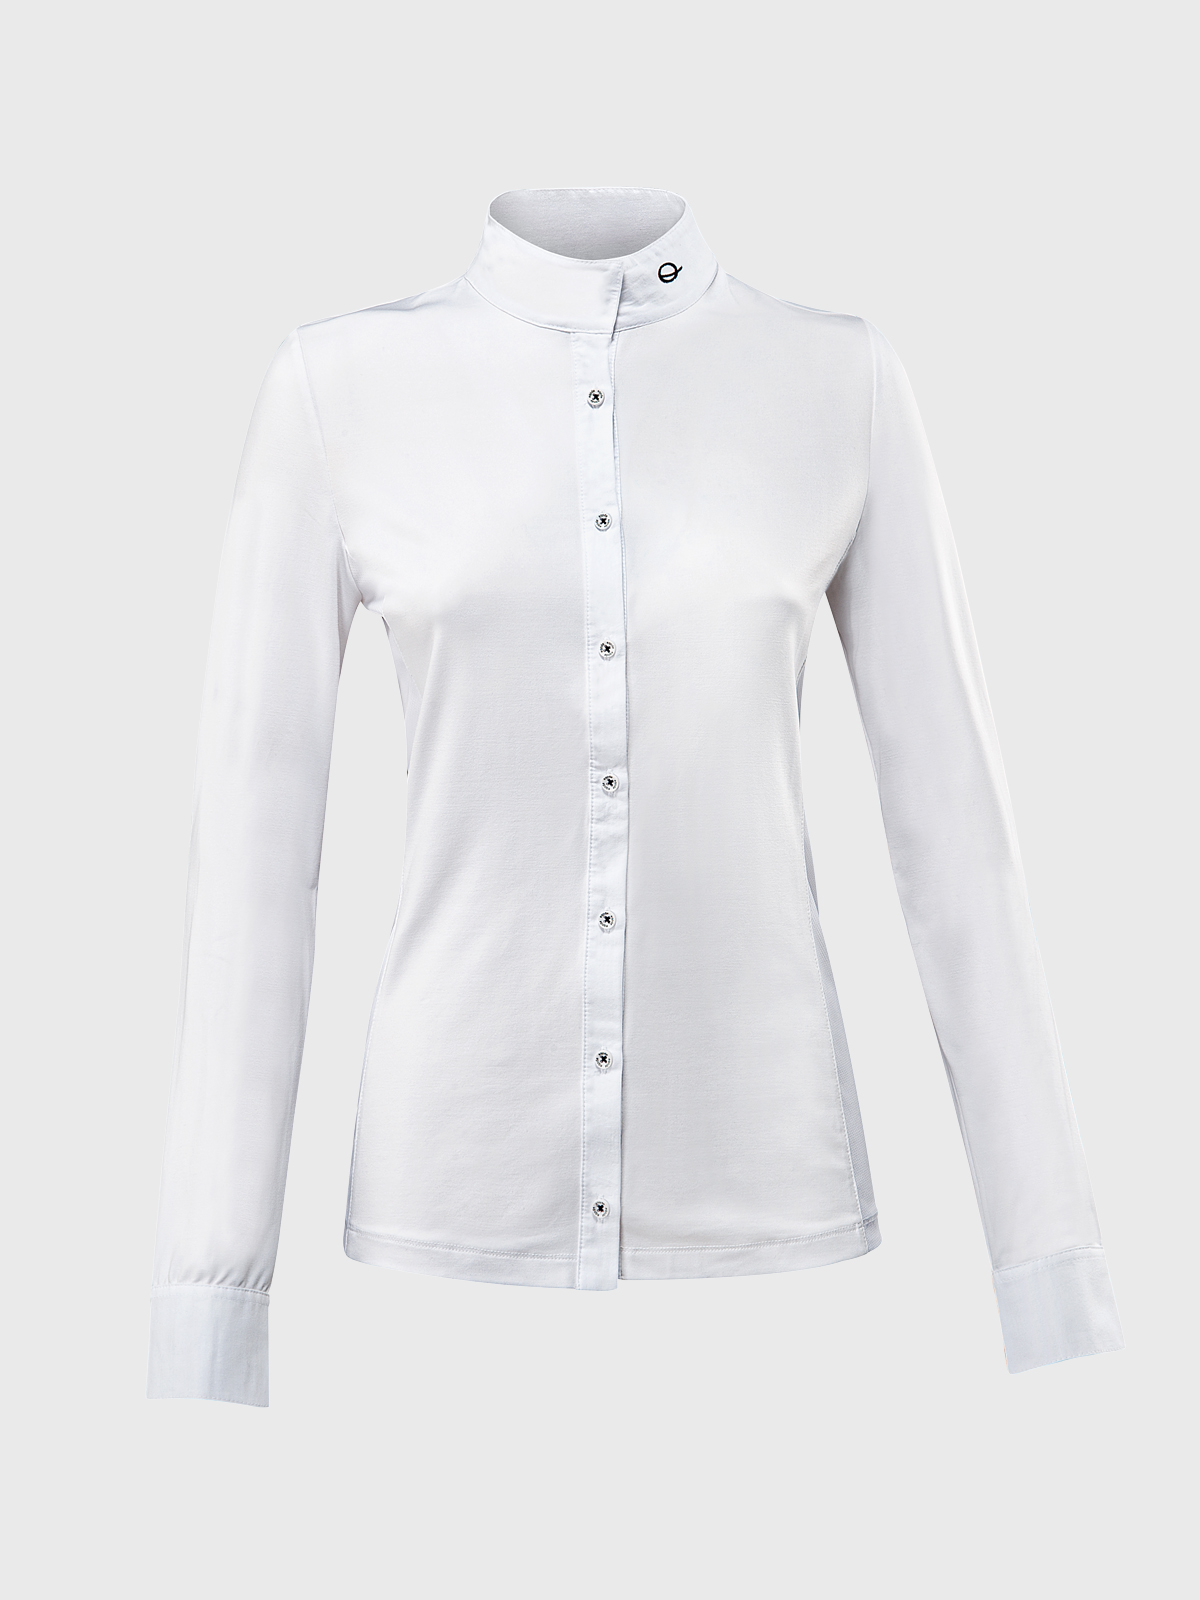 EQODE WOMEN'S SHOW SHIRT WITH LONG SLEEVES 1